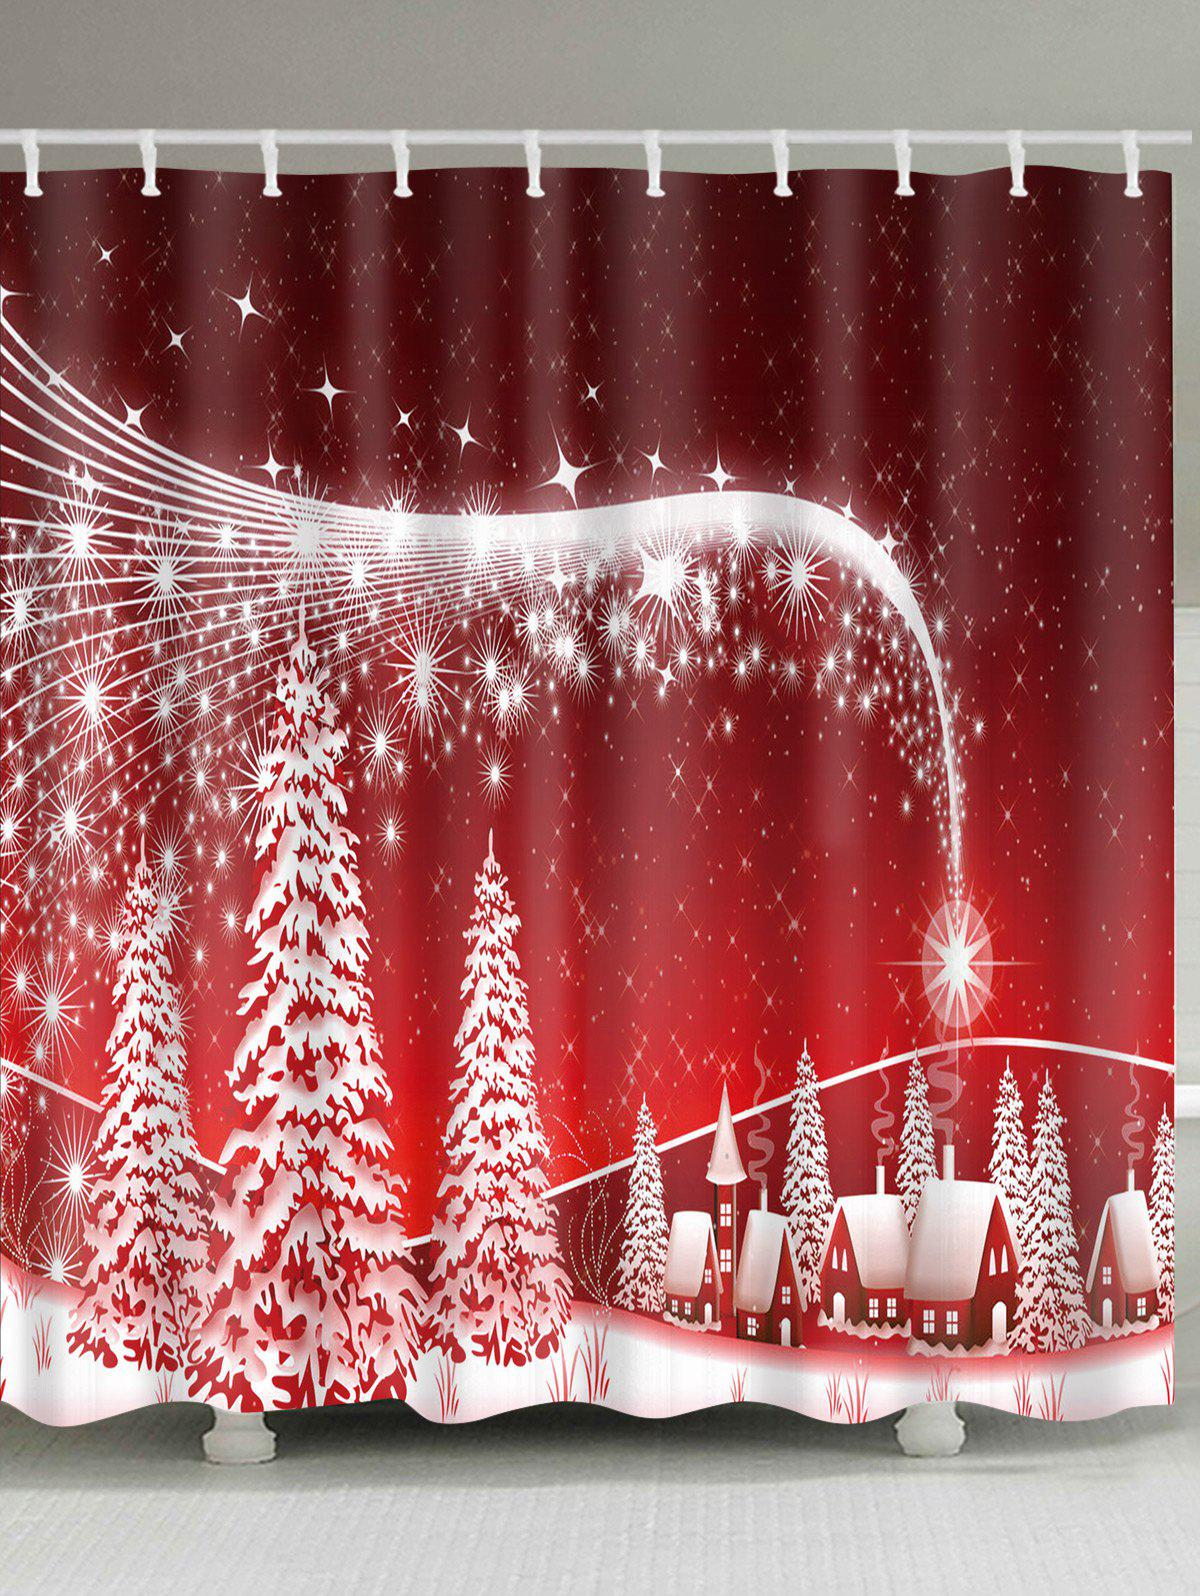 Christmas Snowscape Print Waterproof Polyester Bath CurtainHOME<br><br>Size: W59 INCH * L71 INCH; Color: RED; Products Type: Shower Curtains; Materials: Polyester; Style: Festival; Number of Hook Holes: W59 inch*L71 inch: 10; W71 inch*L71 inch: 12; W71 inch*L79 inch: 12; Package Contents: 1 x Shower Curtain 1 x Hooks (Set);